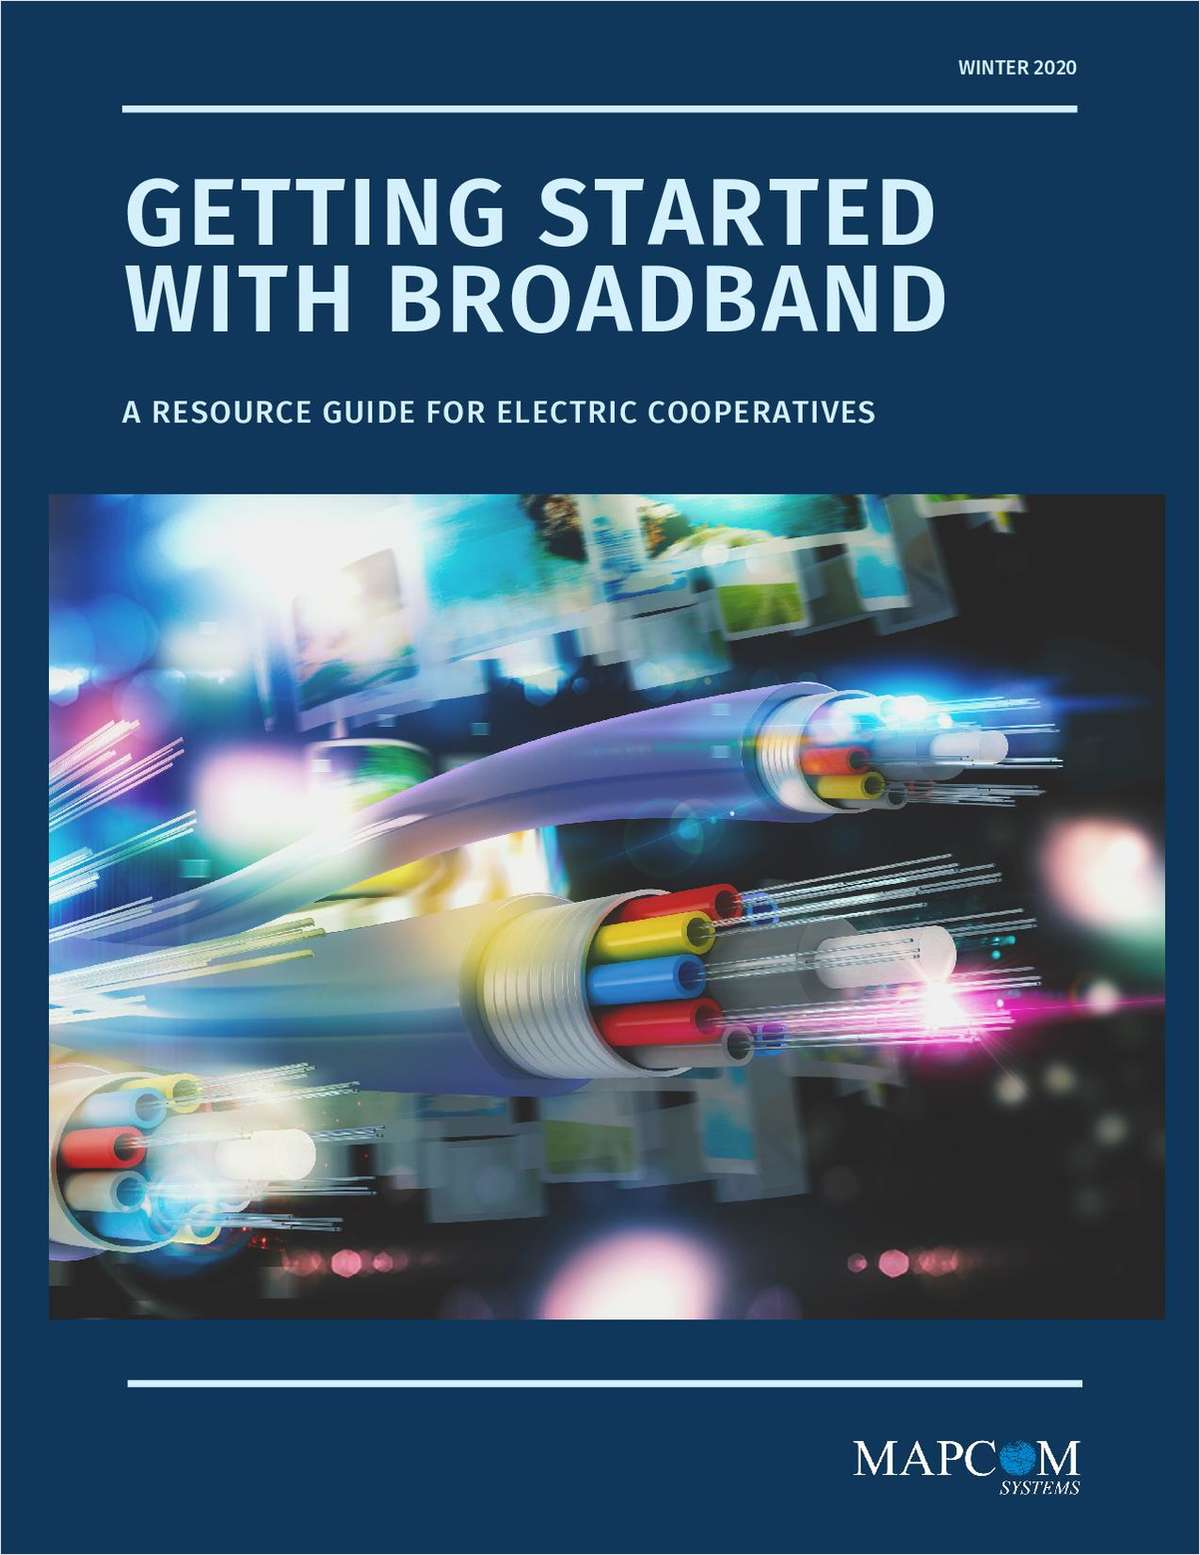 Getting Started with Broadband: A Guide for Electric Cooperatives